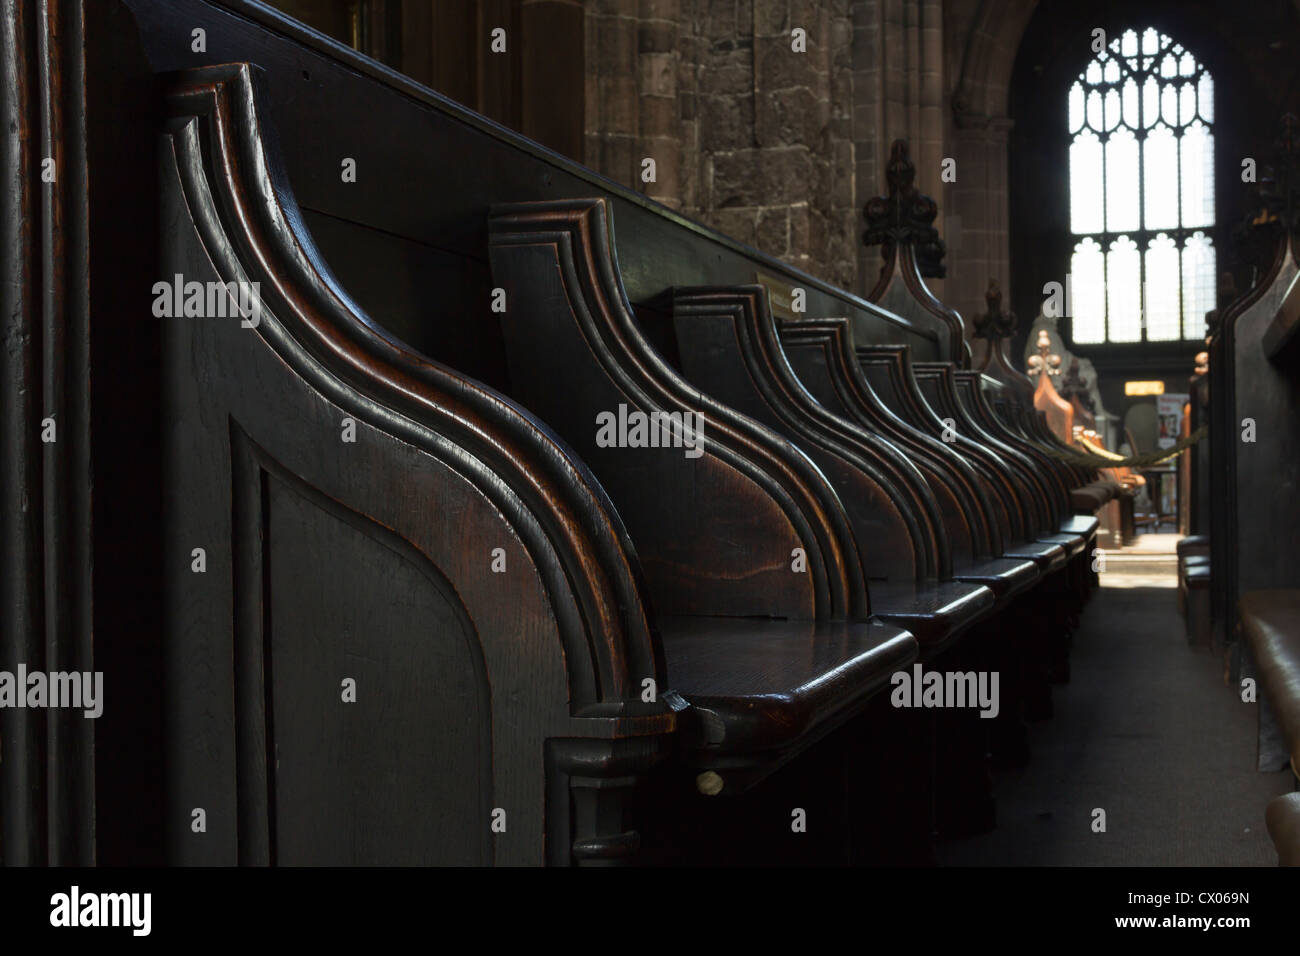 Old carved wood pew type seating at the rear of the nave of Manchester cathedral. - Stock Image